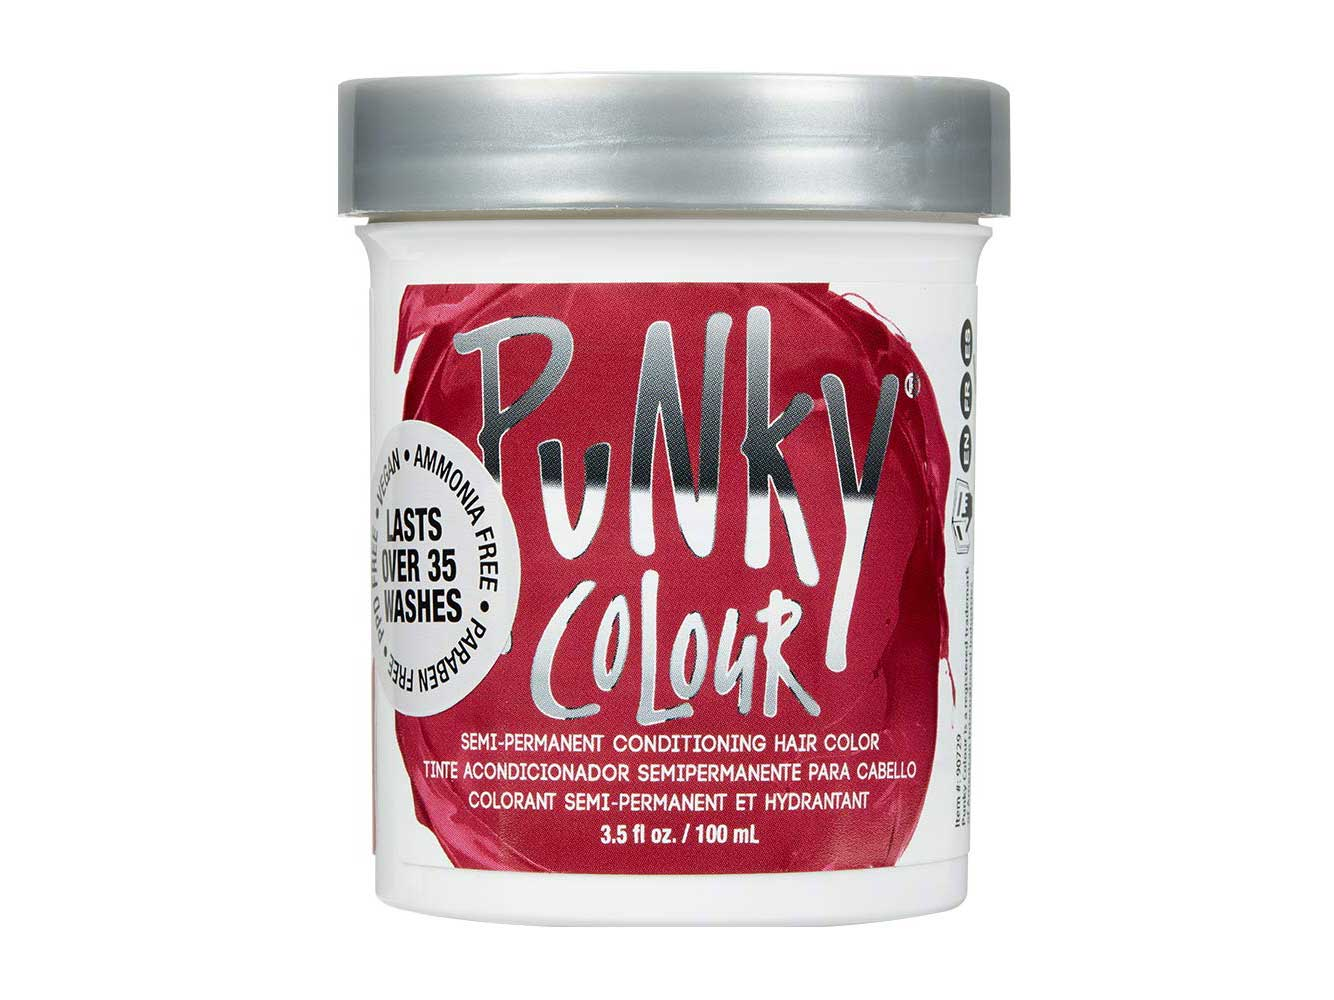 Punky Cherry on Top Semi Permanent Conditioning Hair Color, Vegan, PPD and Paraben Free, lasts up to 25 washes, 3.5oz